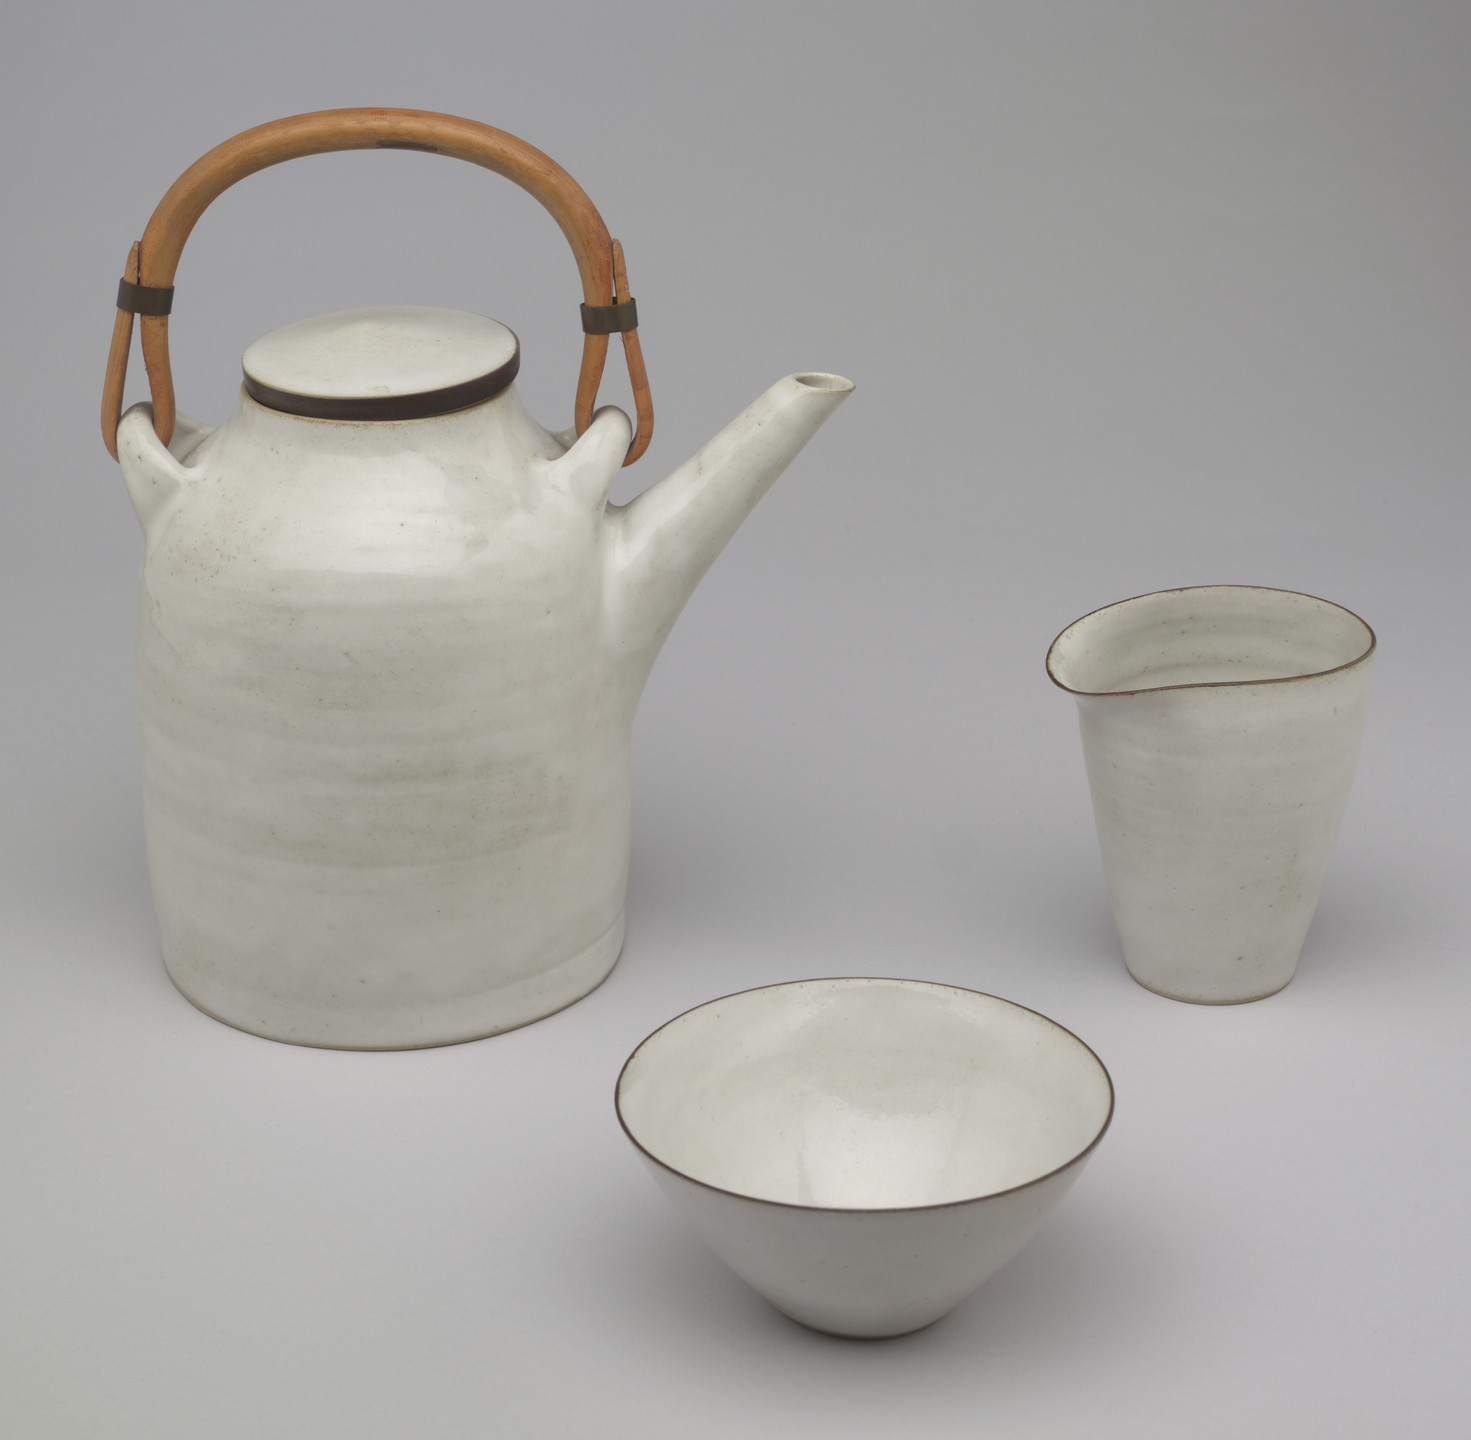 Lucie Rie. Teapot, Cream Pitcher, and Sugar Bowl. c. 1950